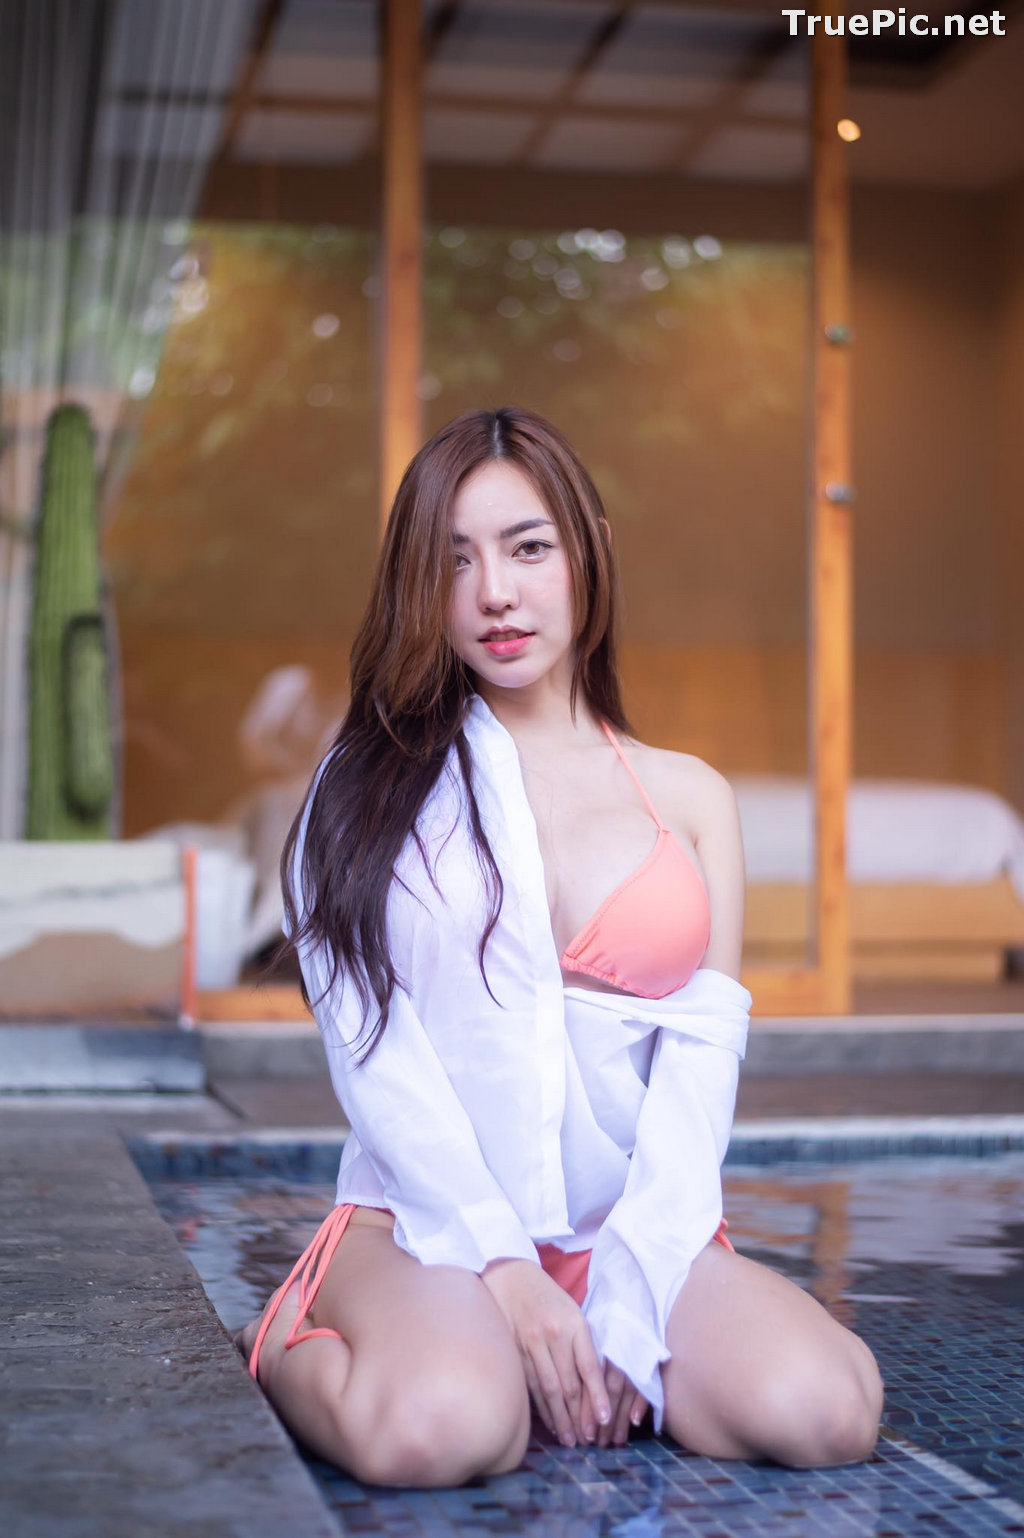 Image Thailand Model - Champ Phawida - Champ In The Pool - TruePic.net - Picture-2